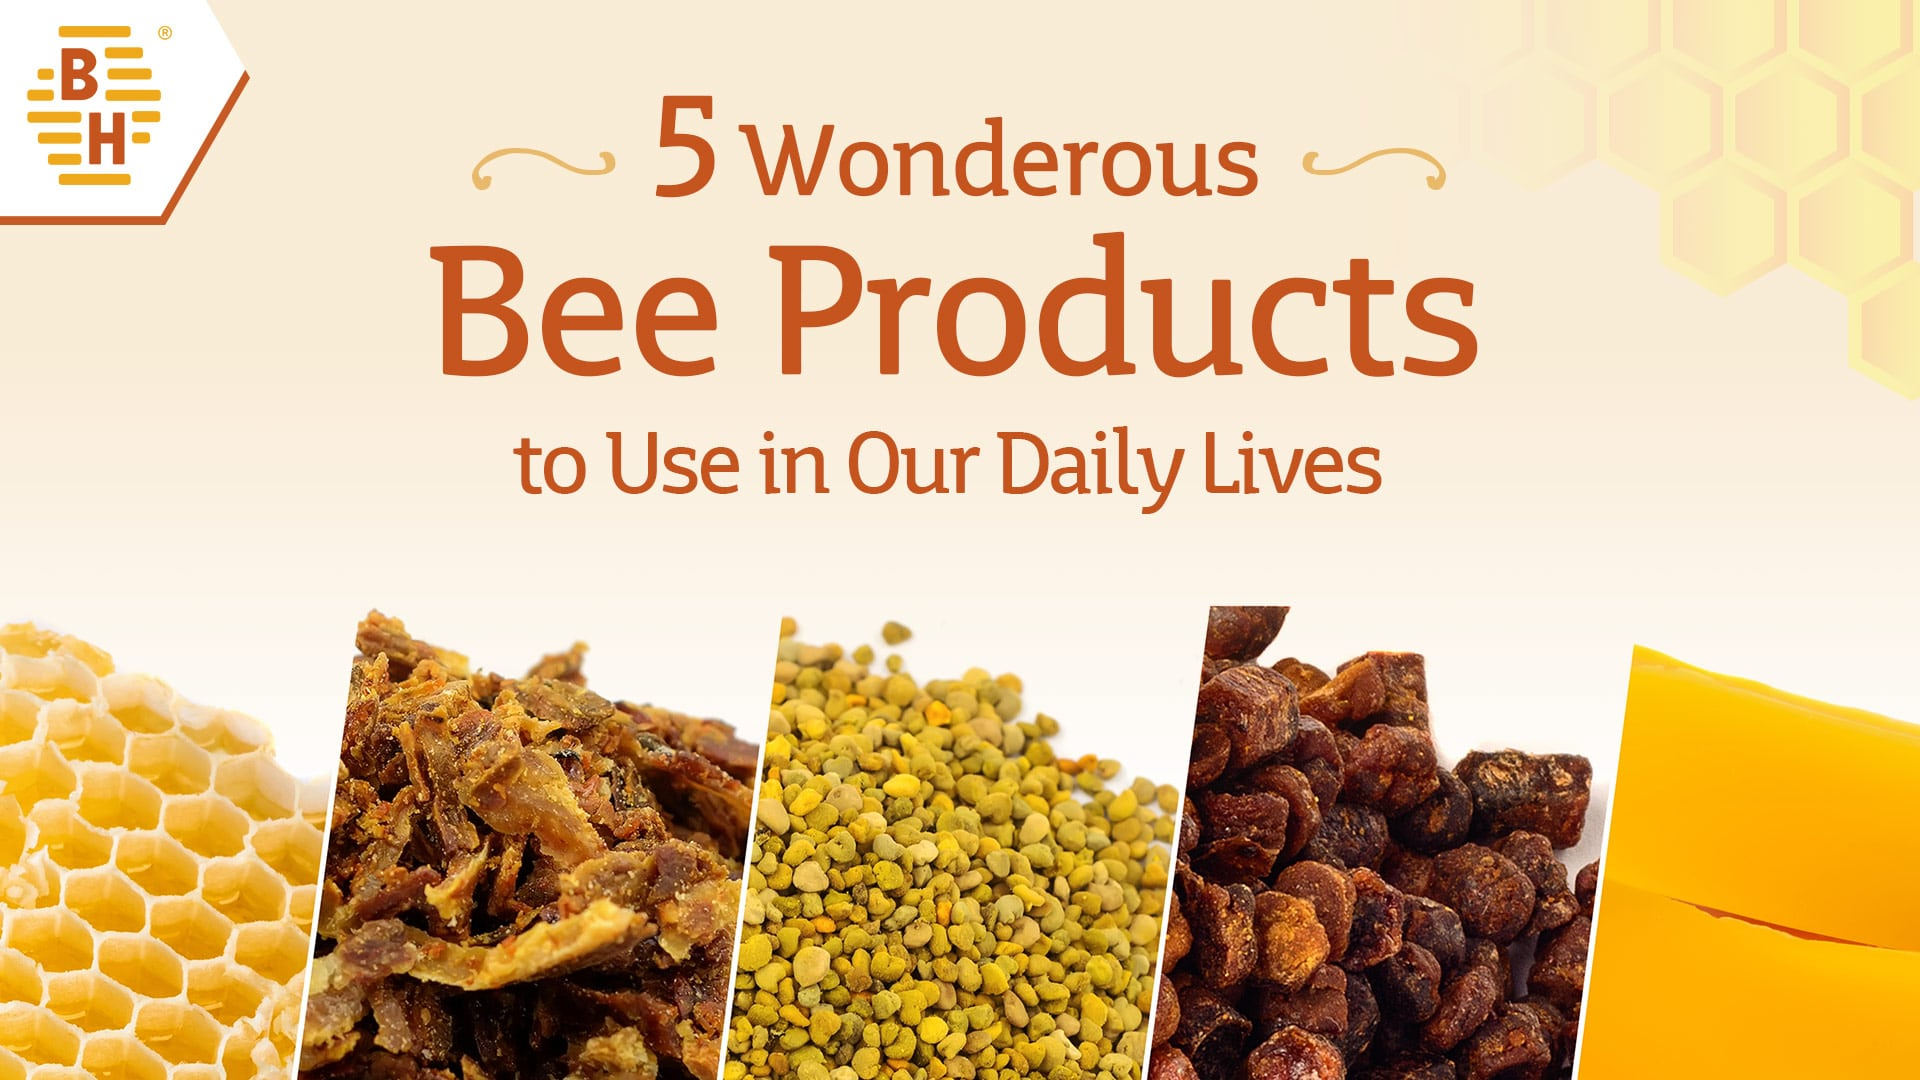 Wonderous Bee Products to Use in Our Daily Lives